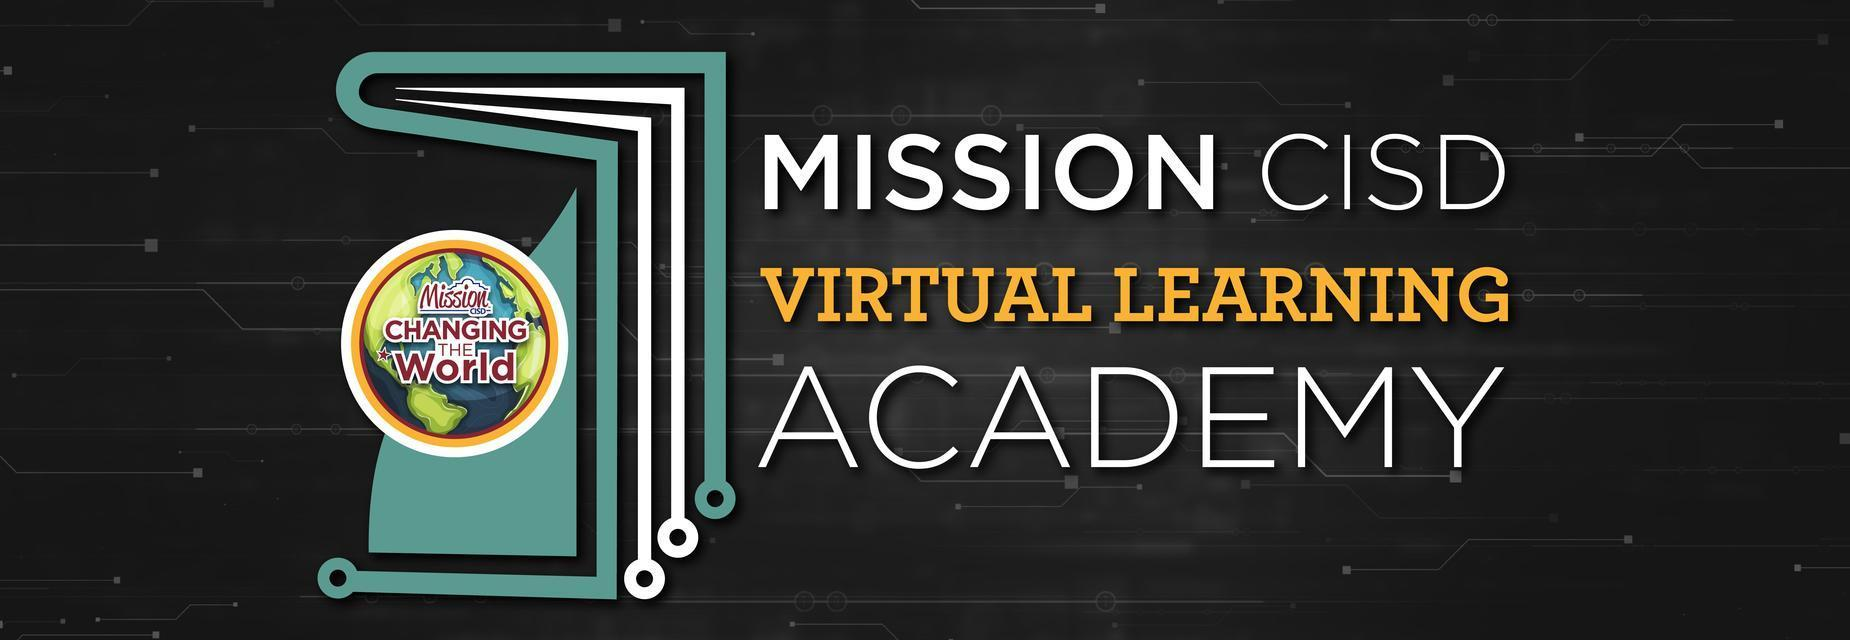 Mission CISD Virtual Learning Academy